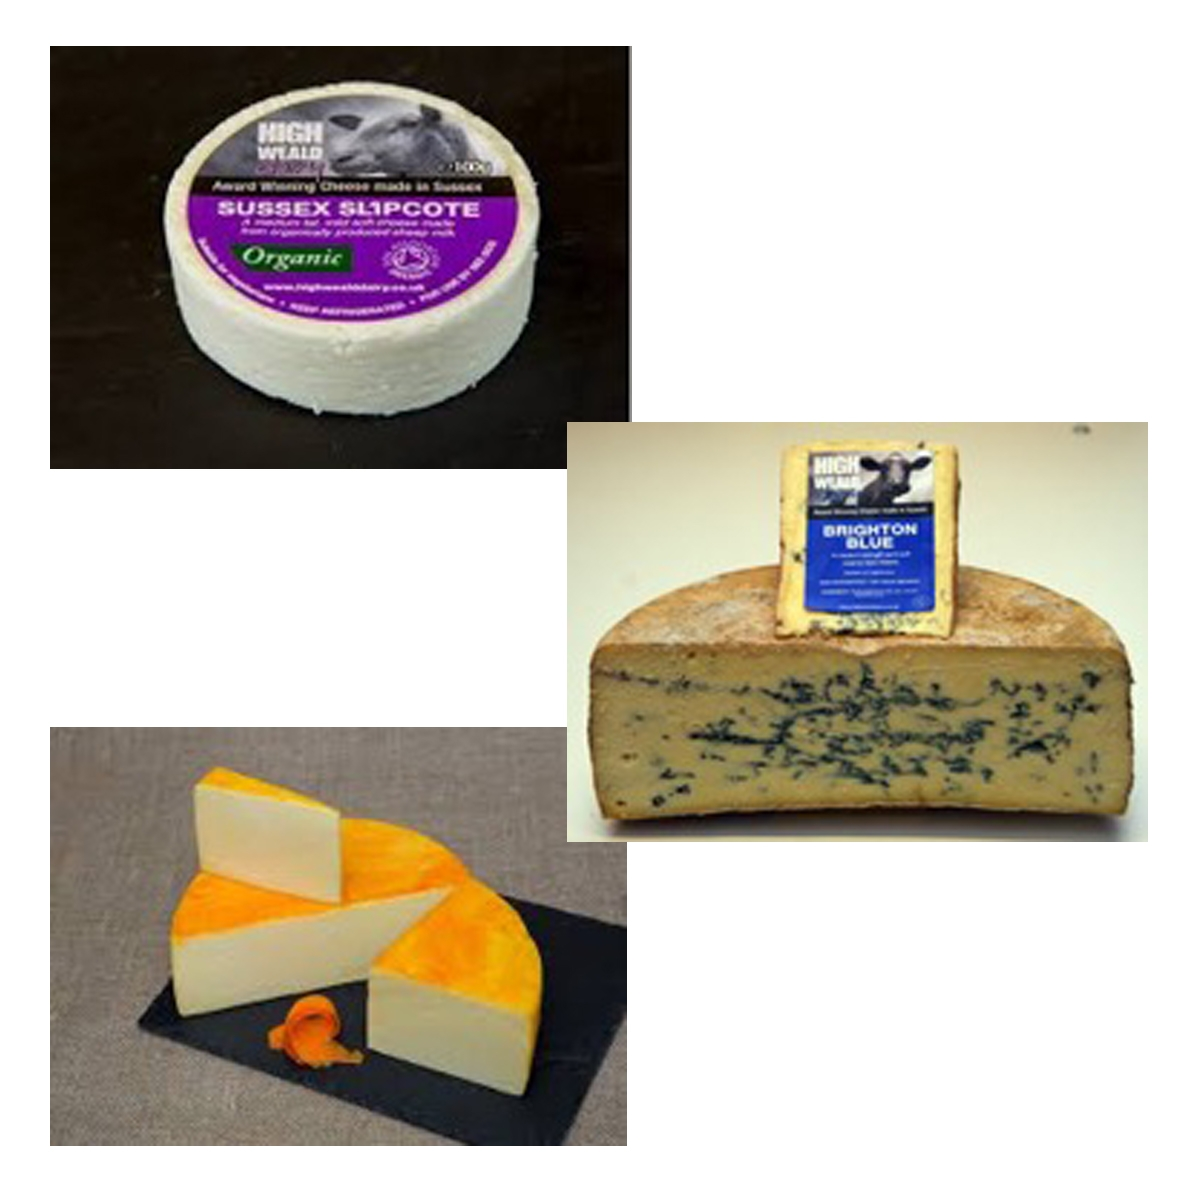 east-sussex-cheeses-hilliards.jpg